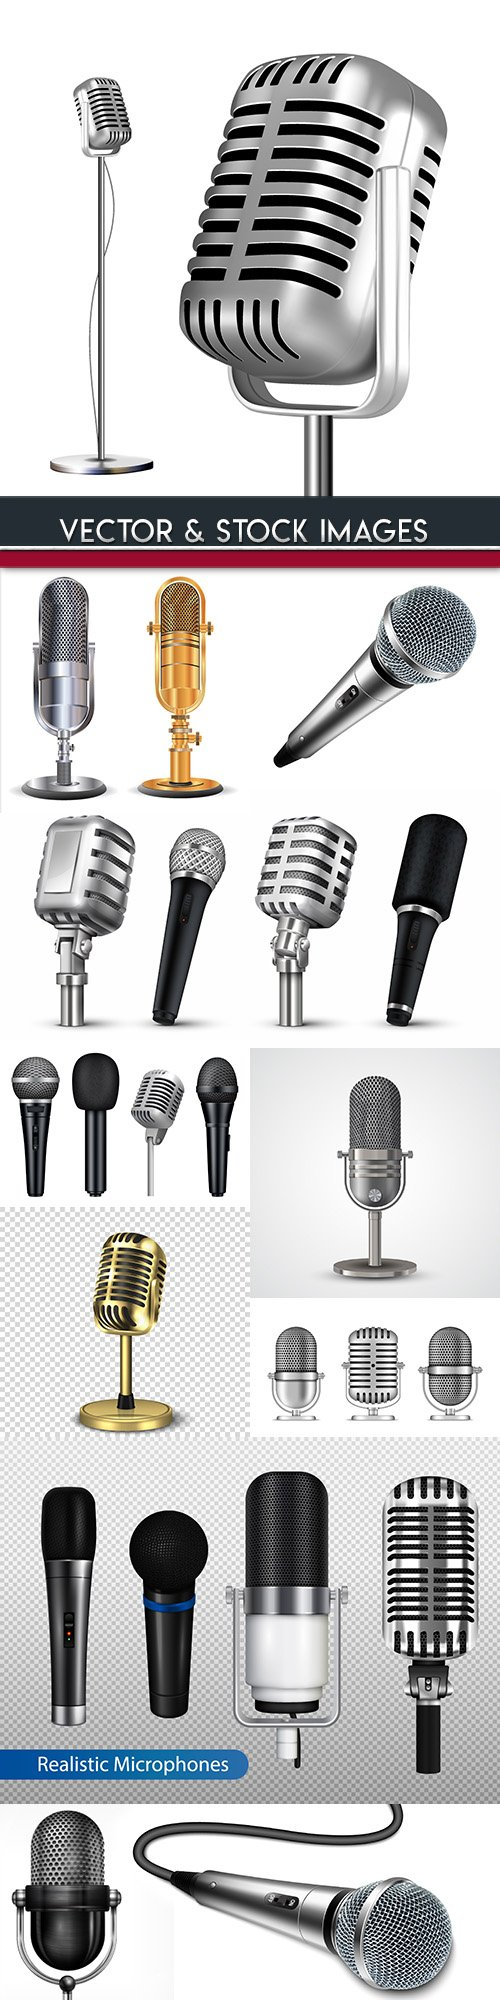 Music microphone collection 3d illustration